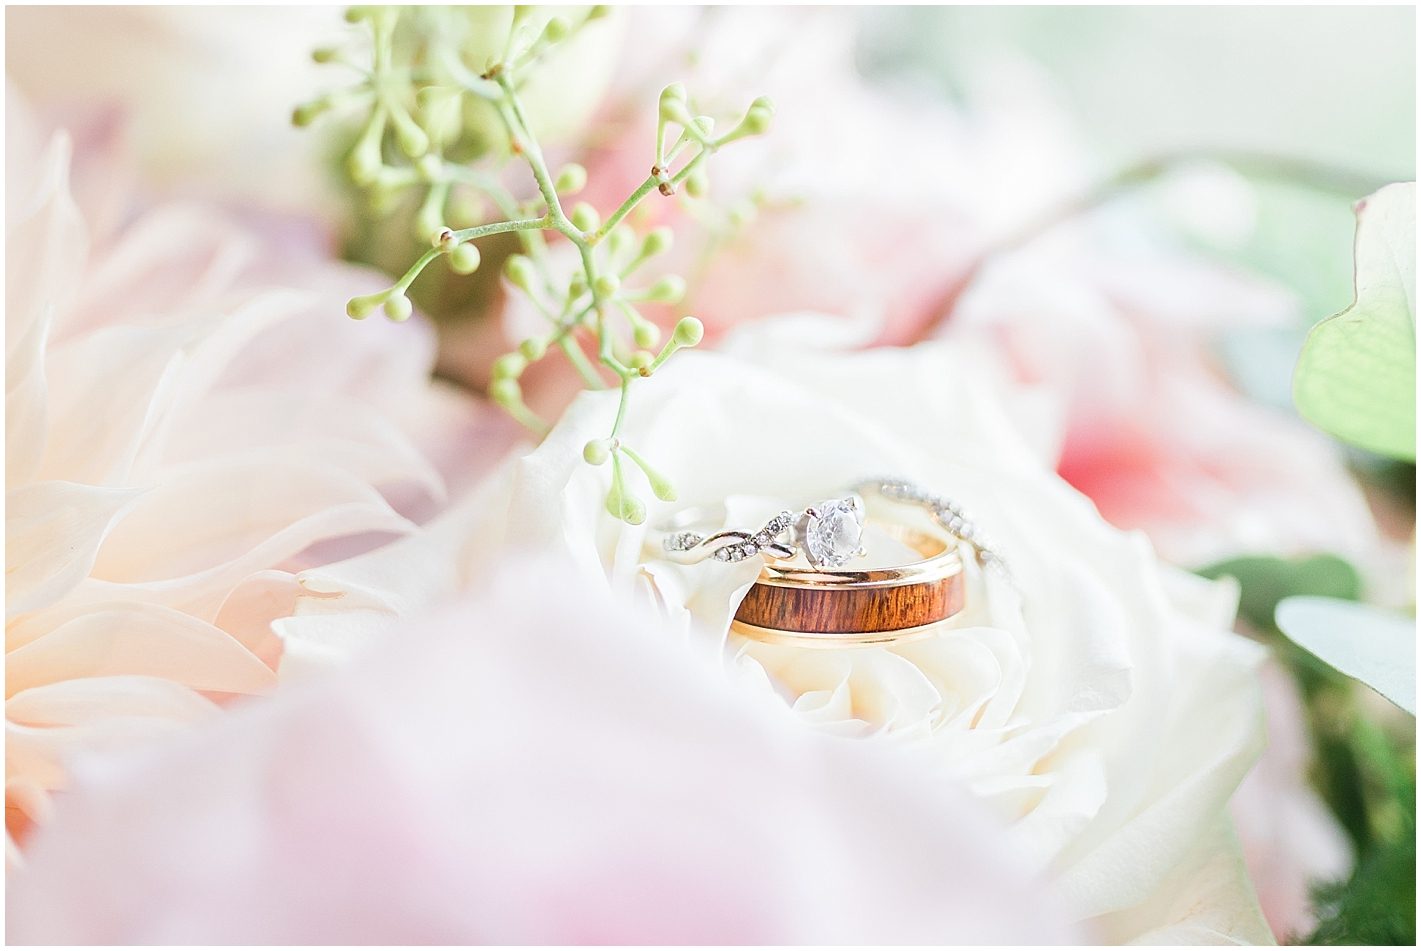 Wood and Gold Mens wedding band photo by Alyssa Parker Photography